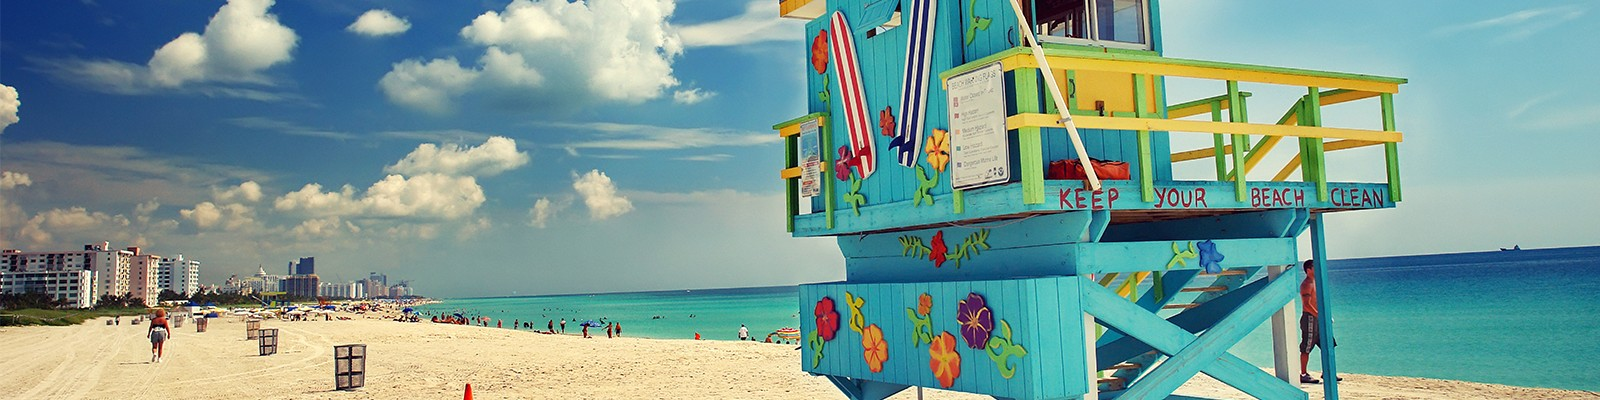 Miami Multi Centre - Miami South Beach - Header